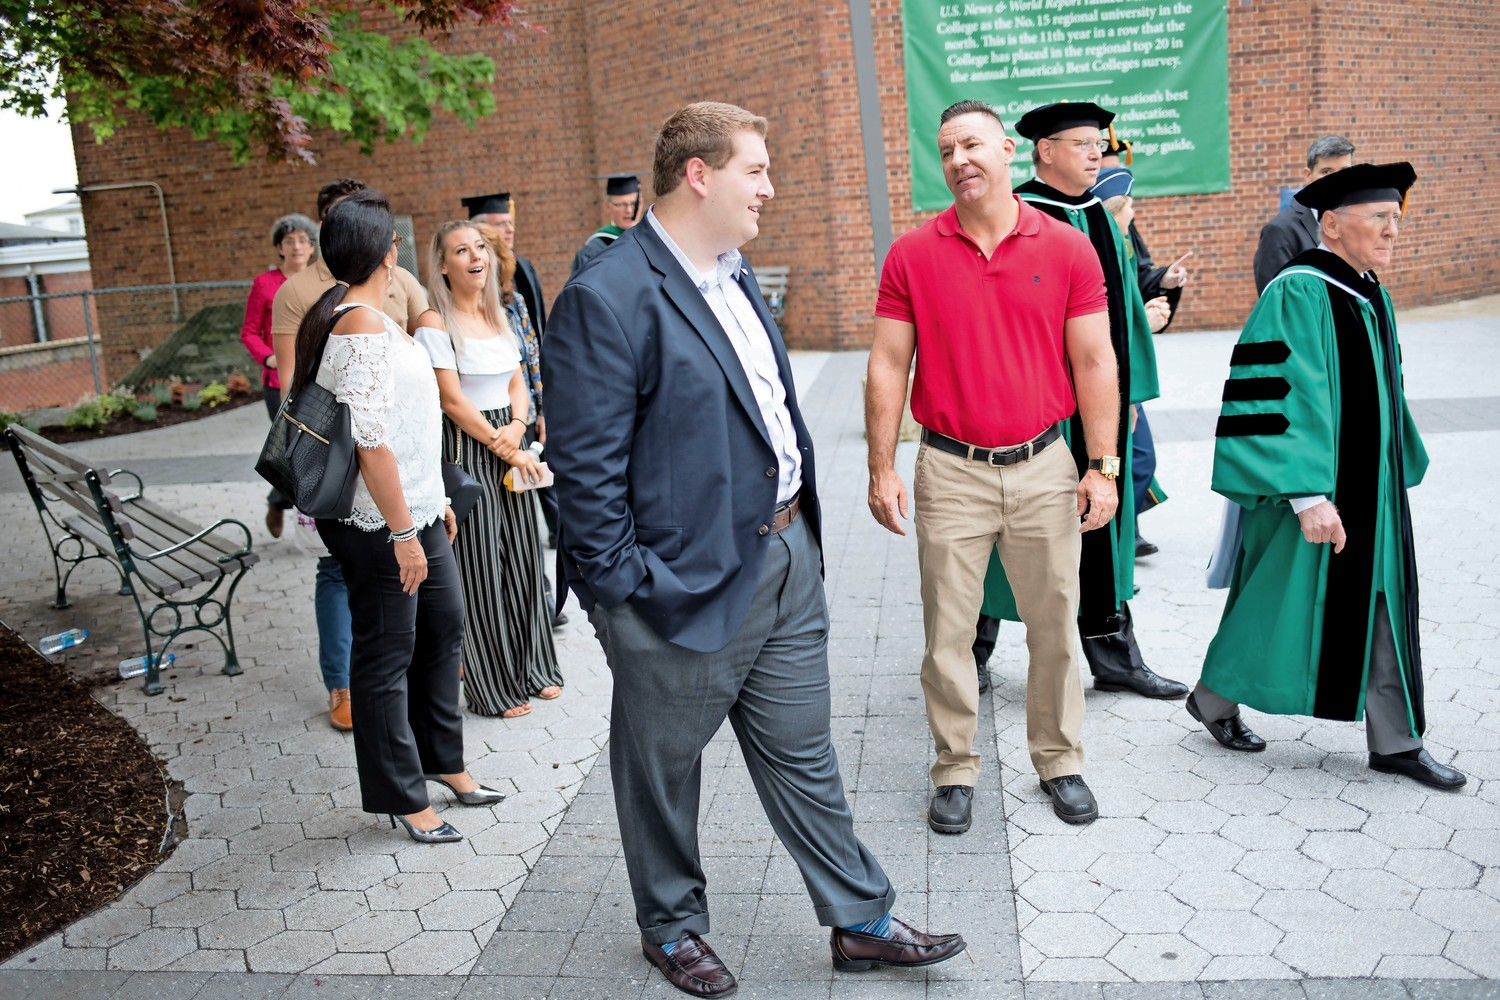 Ryan Quattromani, center, walks towards Draddy Gymnasium for the baccalaureate mass for graduating seniors at Manhattan College. Quattromani was recently honored by Councilman Andrew Cohen for his work with the Manhattan College Neighborhood Relations Committee, which he founded with Micaela Bishop, to forge a stronger relationship between students and the surrounding community.